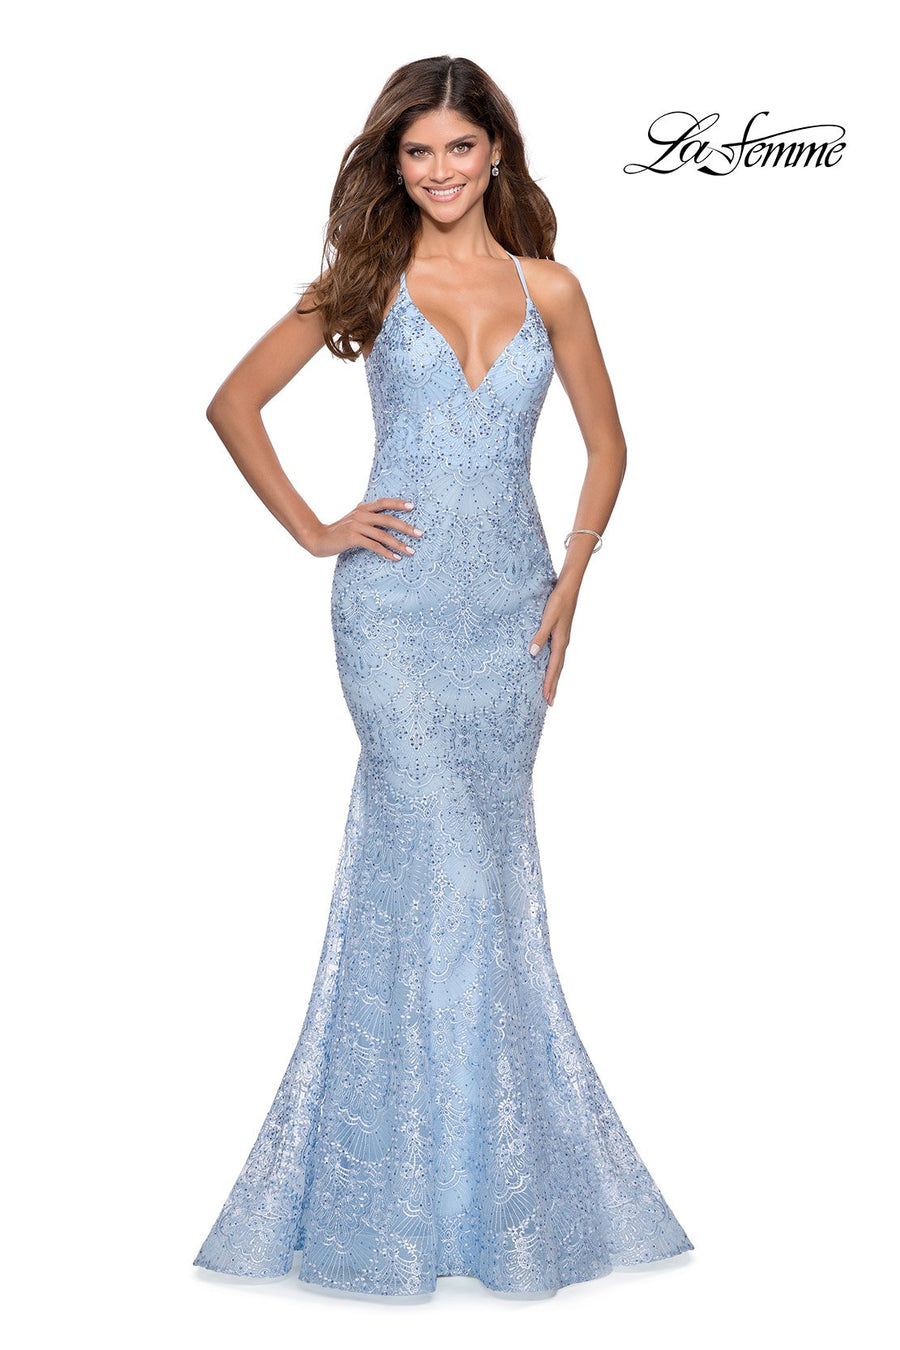 La Femme 28643 prom dress images.  La Femme 28643 is available in these colors: Cloud Blue, Emerald, Pale Yellow, Red.